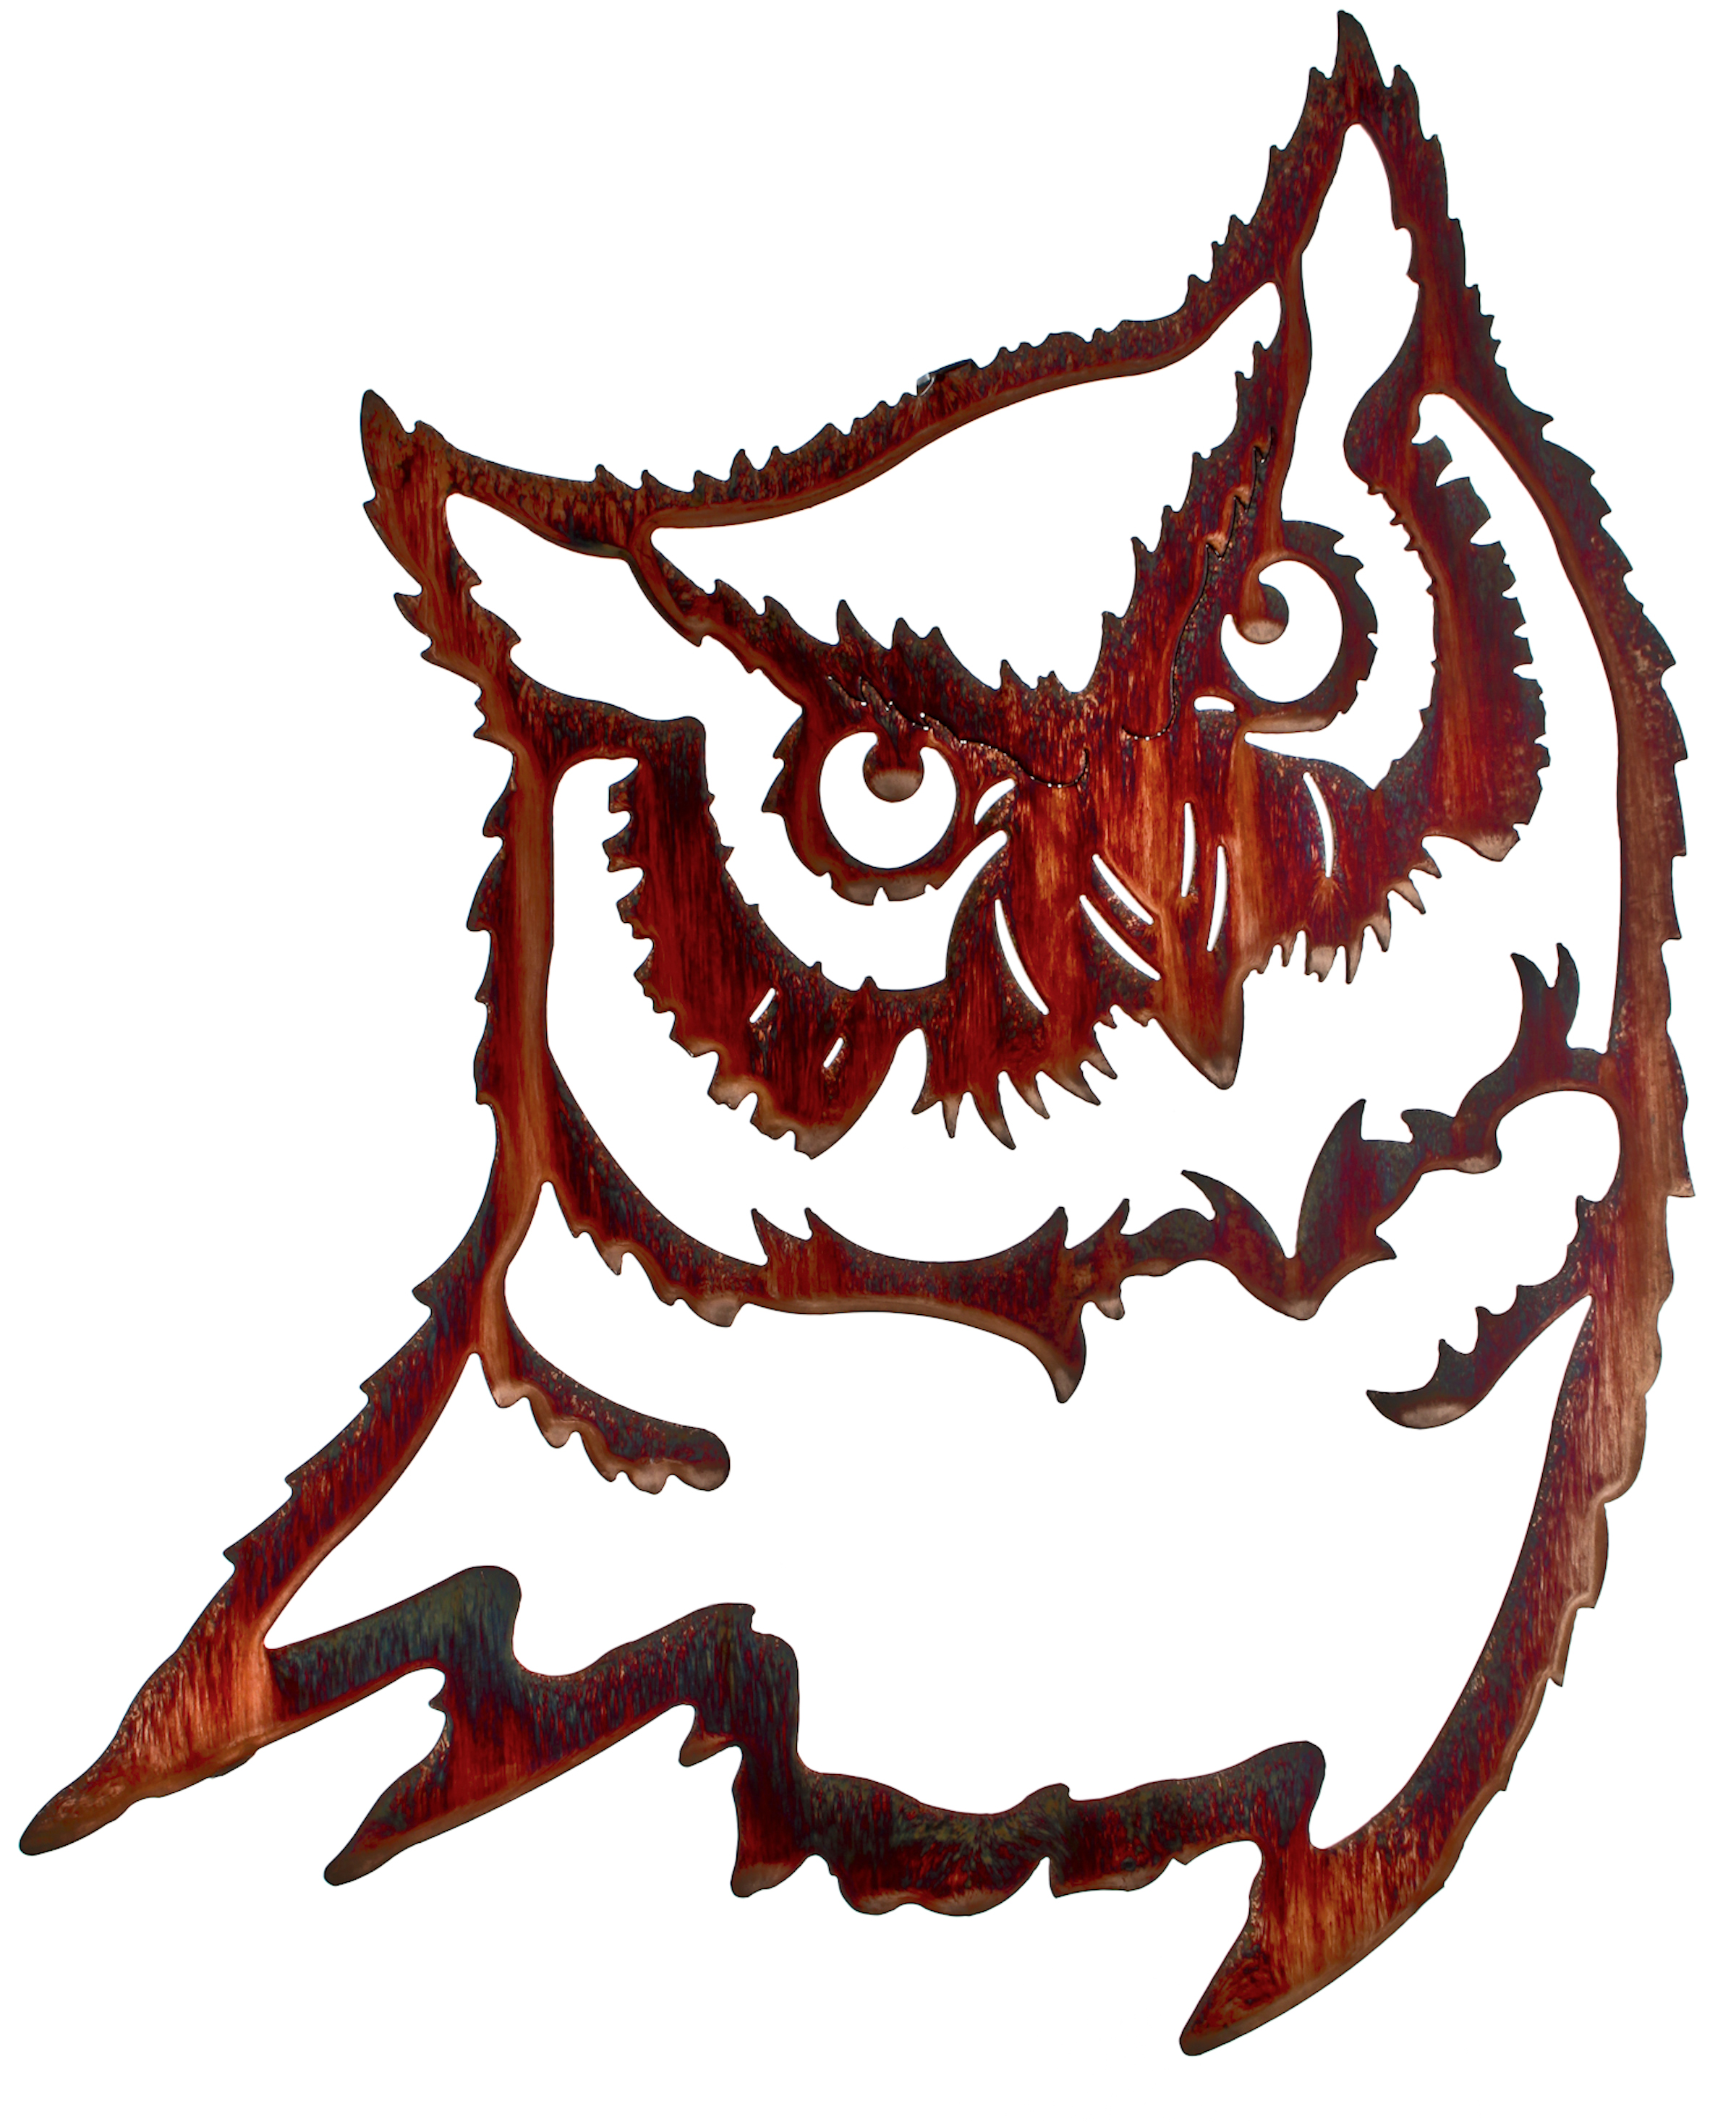 METAL WALL HANGINGS OF OWLS, OWL WALL ART, LAZART, THIRSTYSTONE